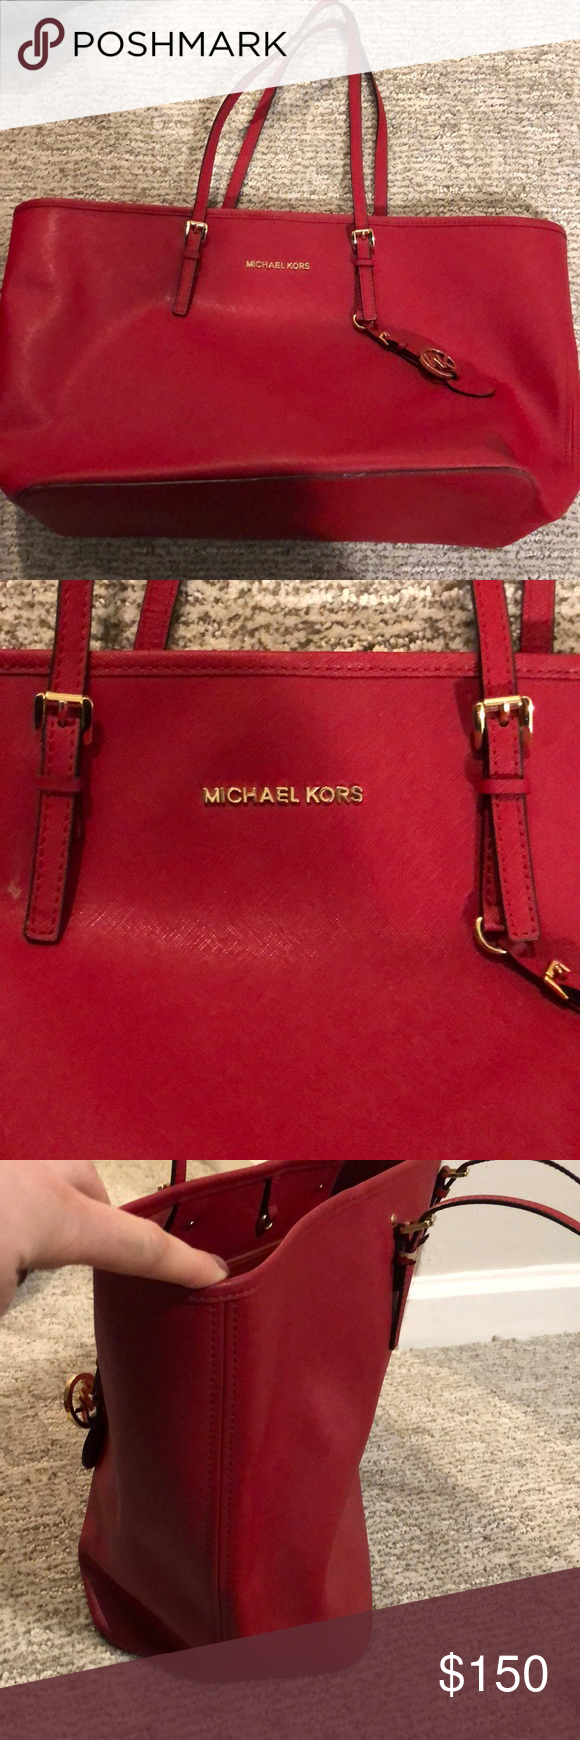 70844097684a57 Michael Kors red tote bag Beautiful deep red color. Large tote size.  Dimensions are